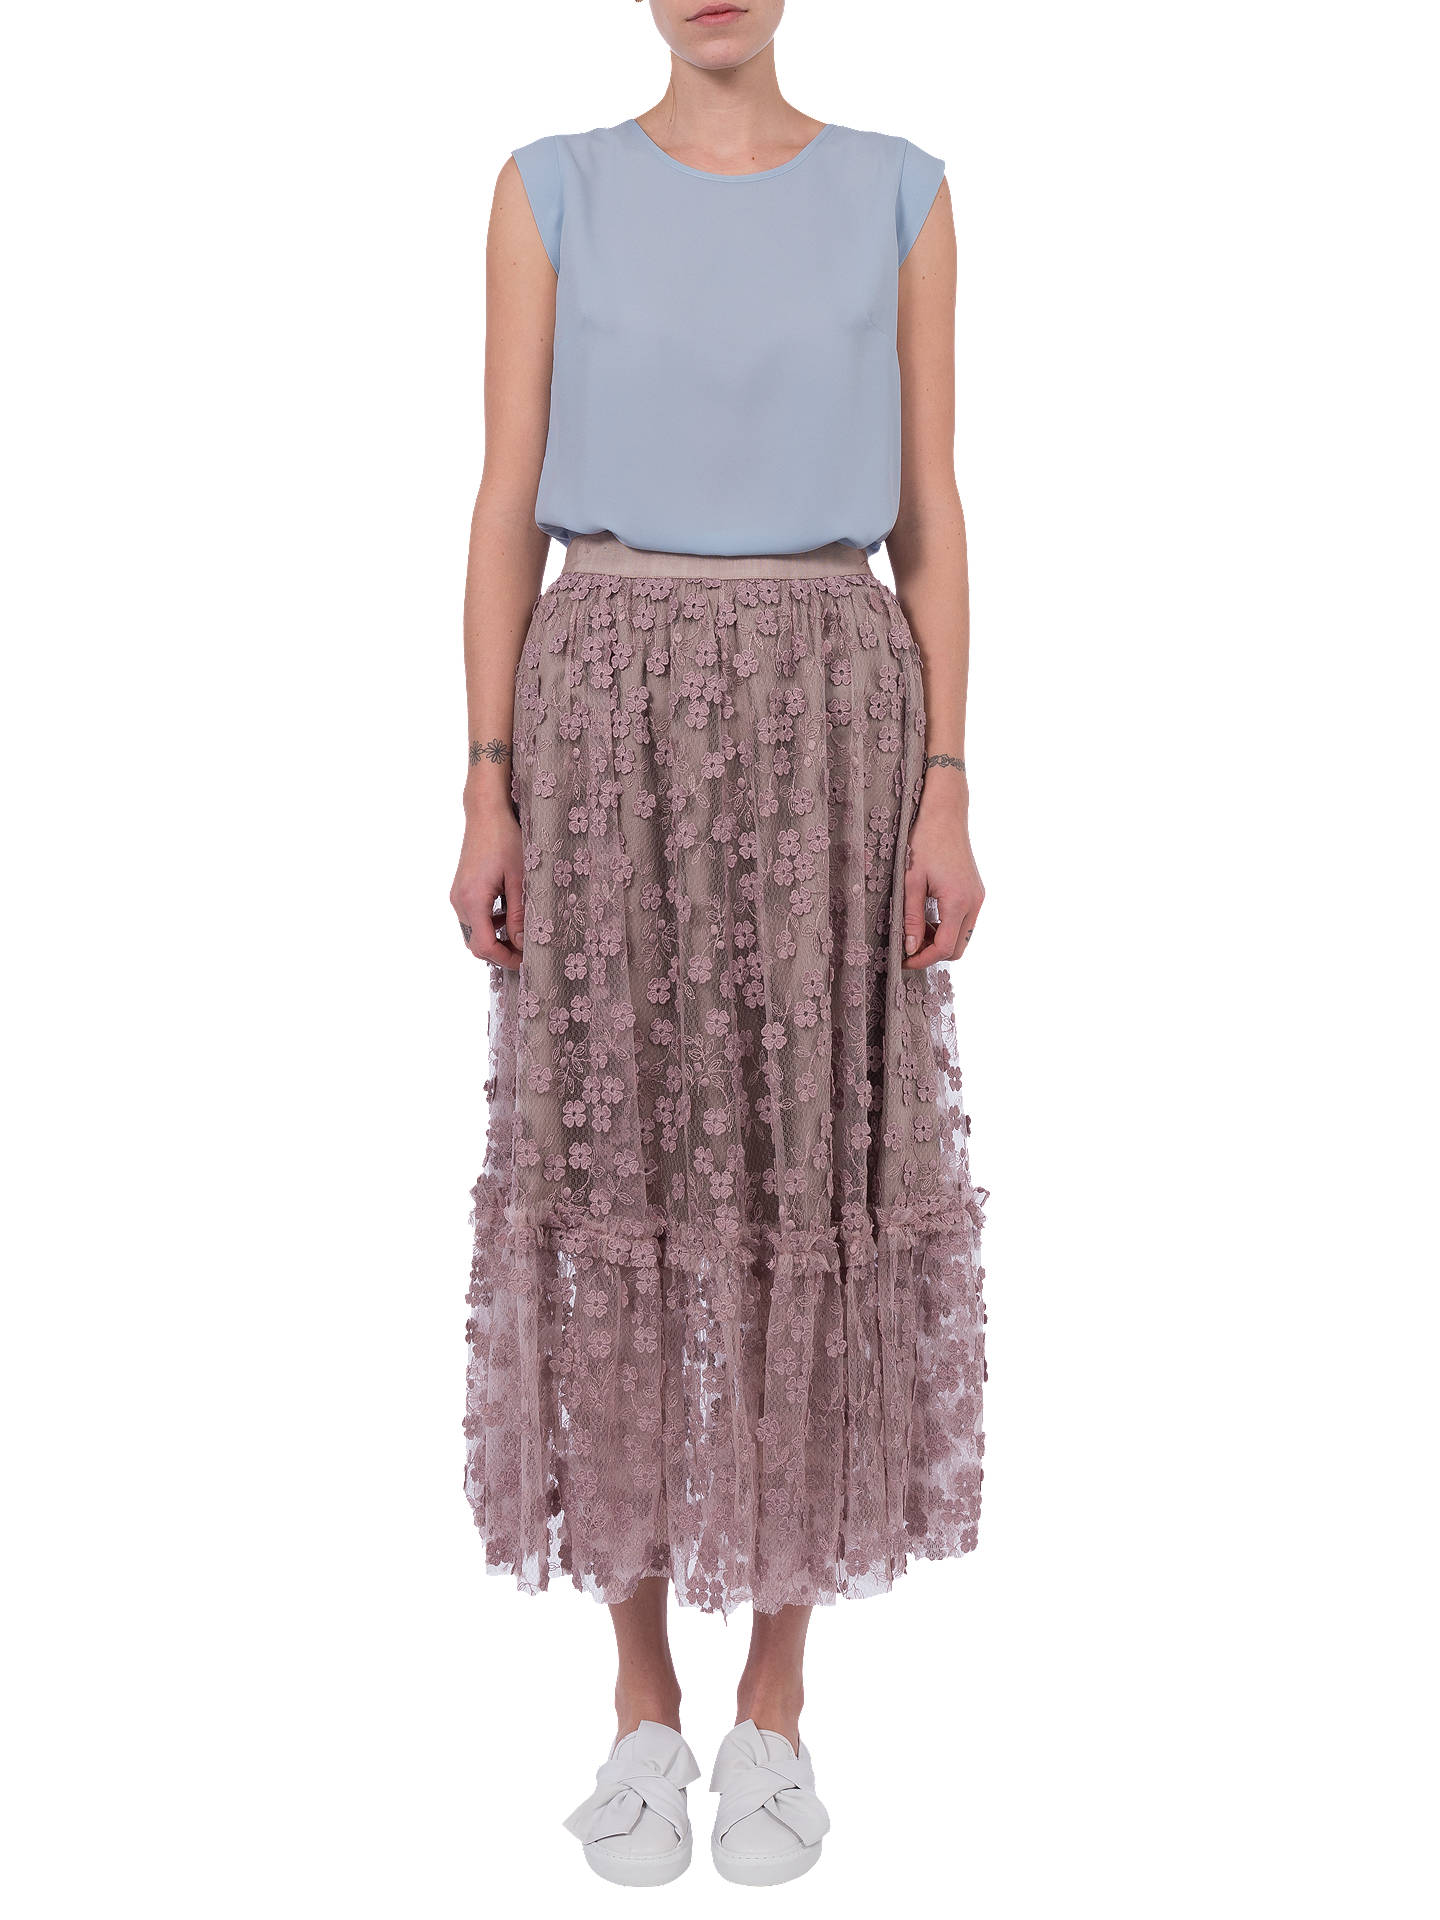 bd4fb335f Buy French Connection Caballo Flared Skirt, Multi, 6 Online at  johnlewis.com ...